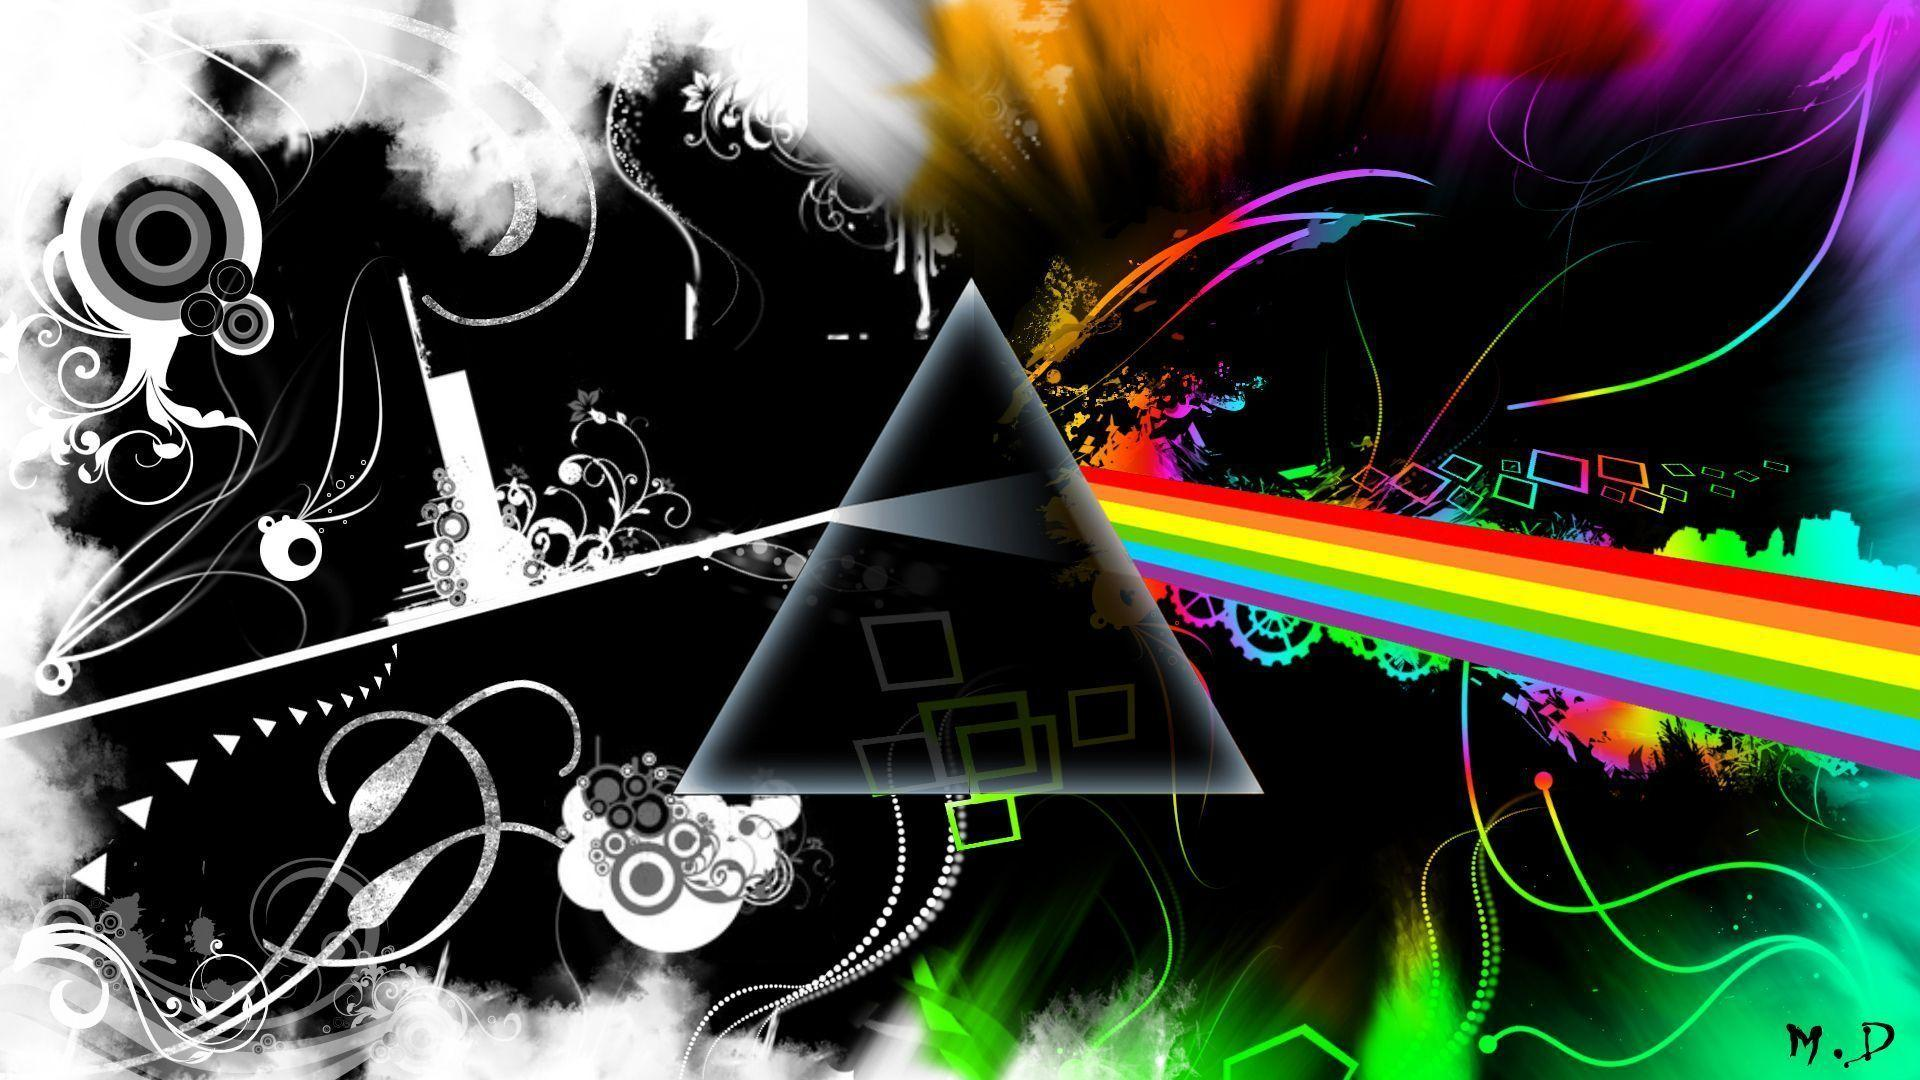 rock music wallpapers hd - photo #33